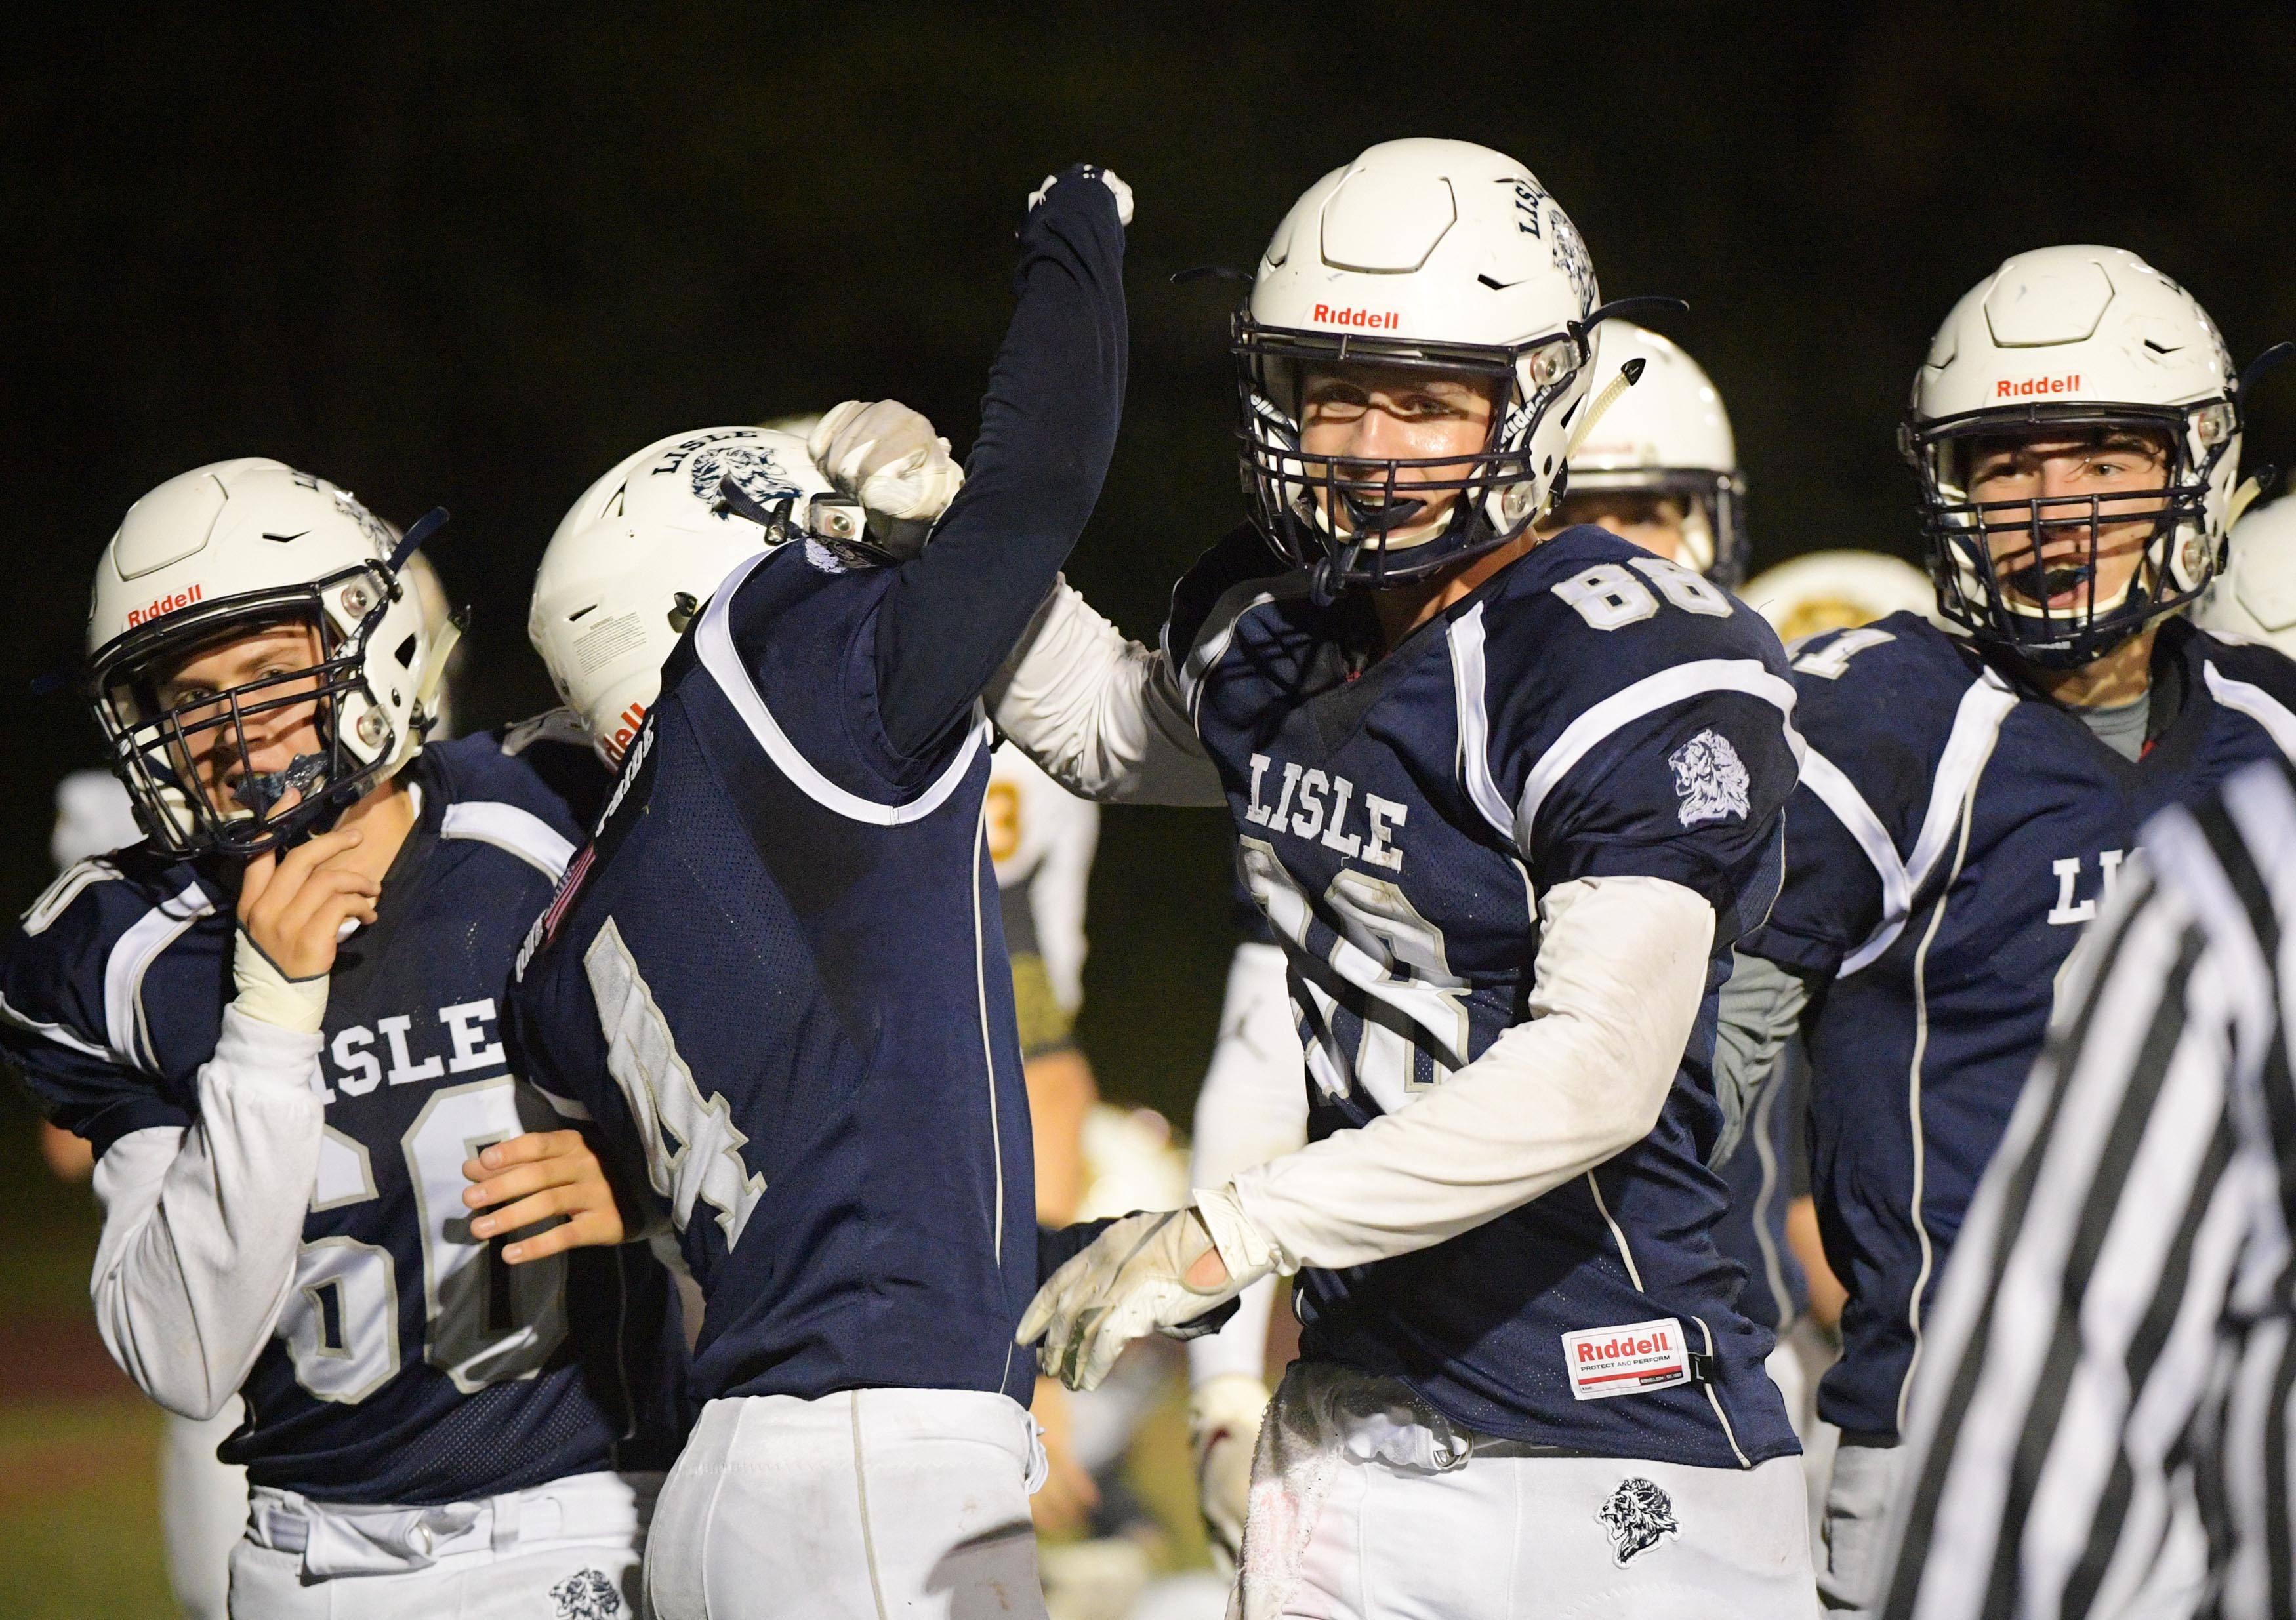 Lisle rallies to win in OT, clinch first league title since 1981